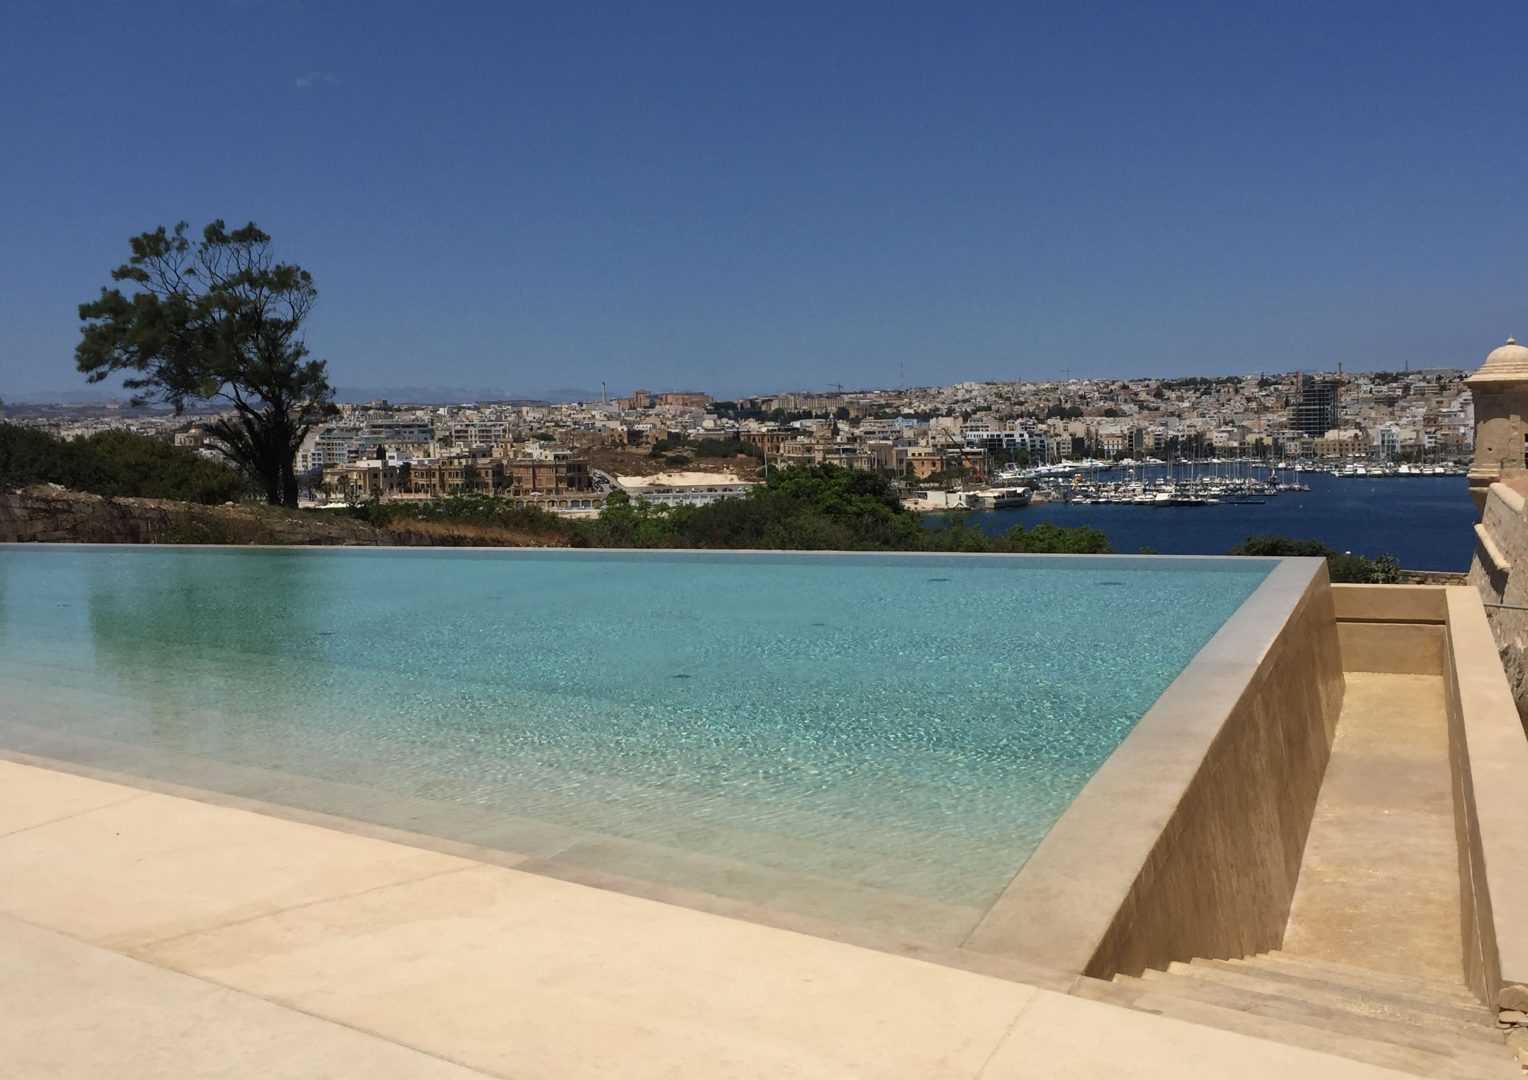 The view from the new pool area. Credits AP Valletta.